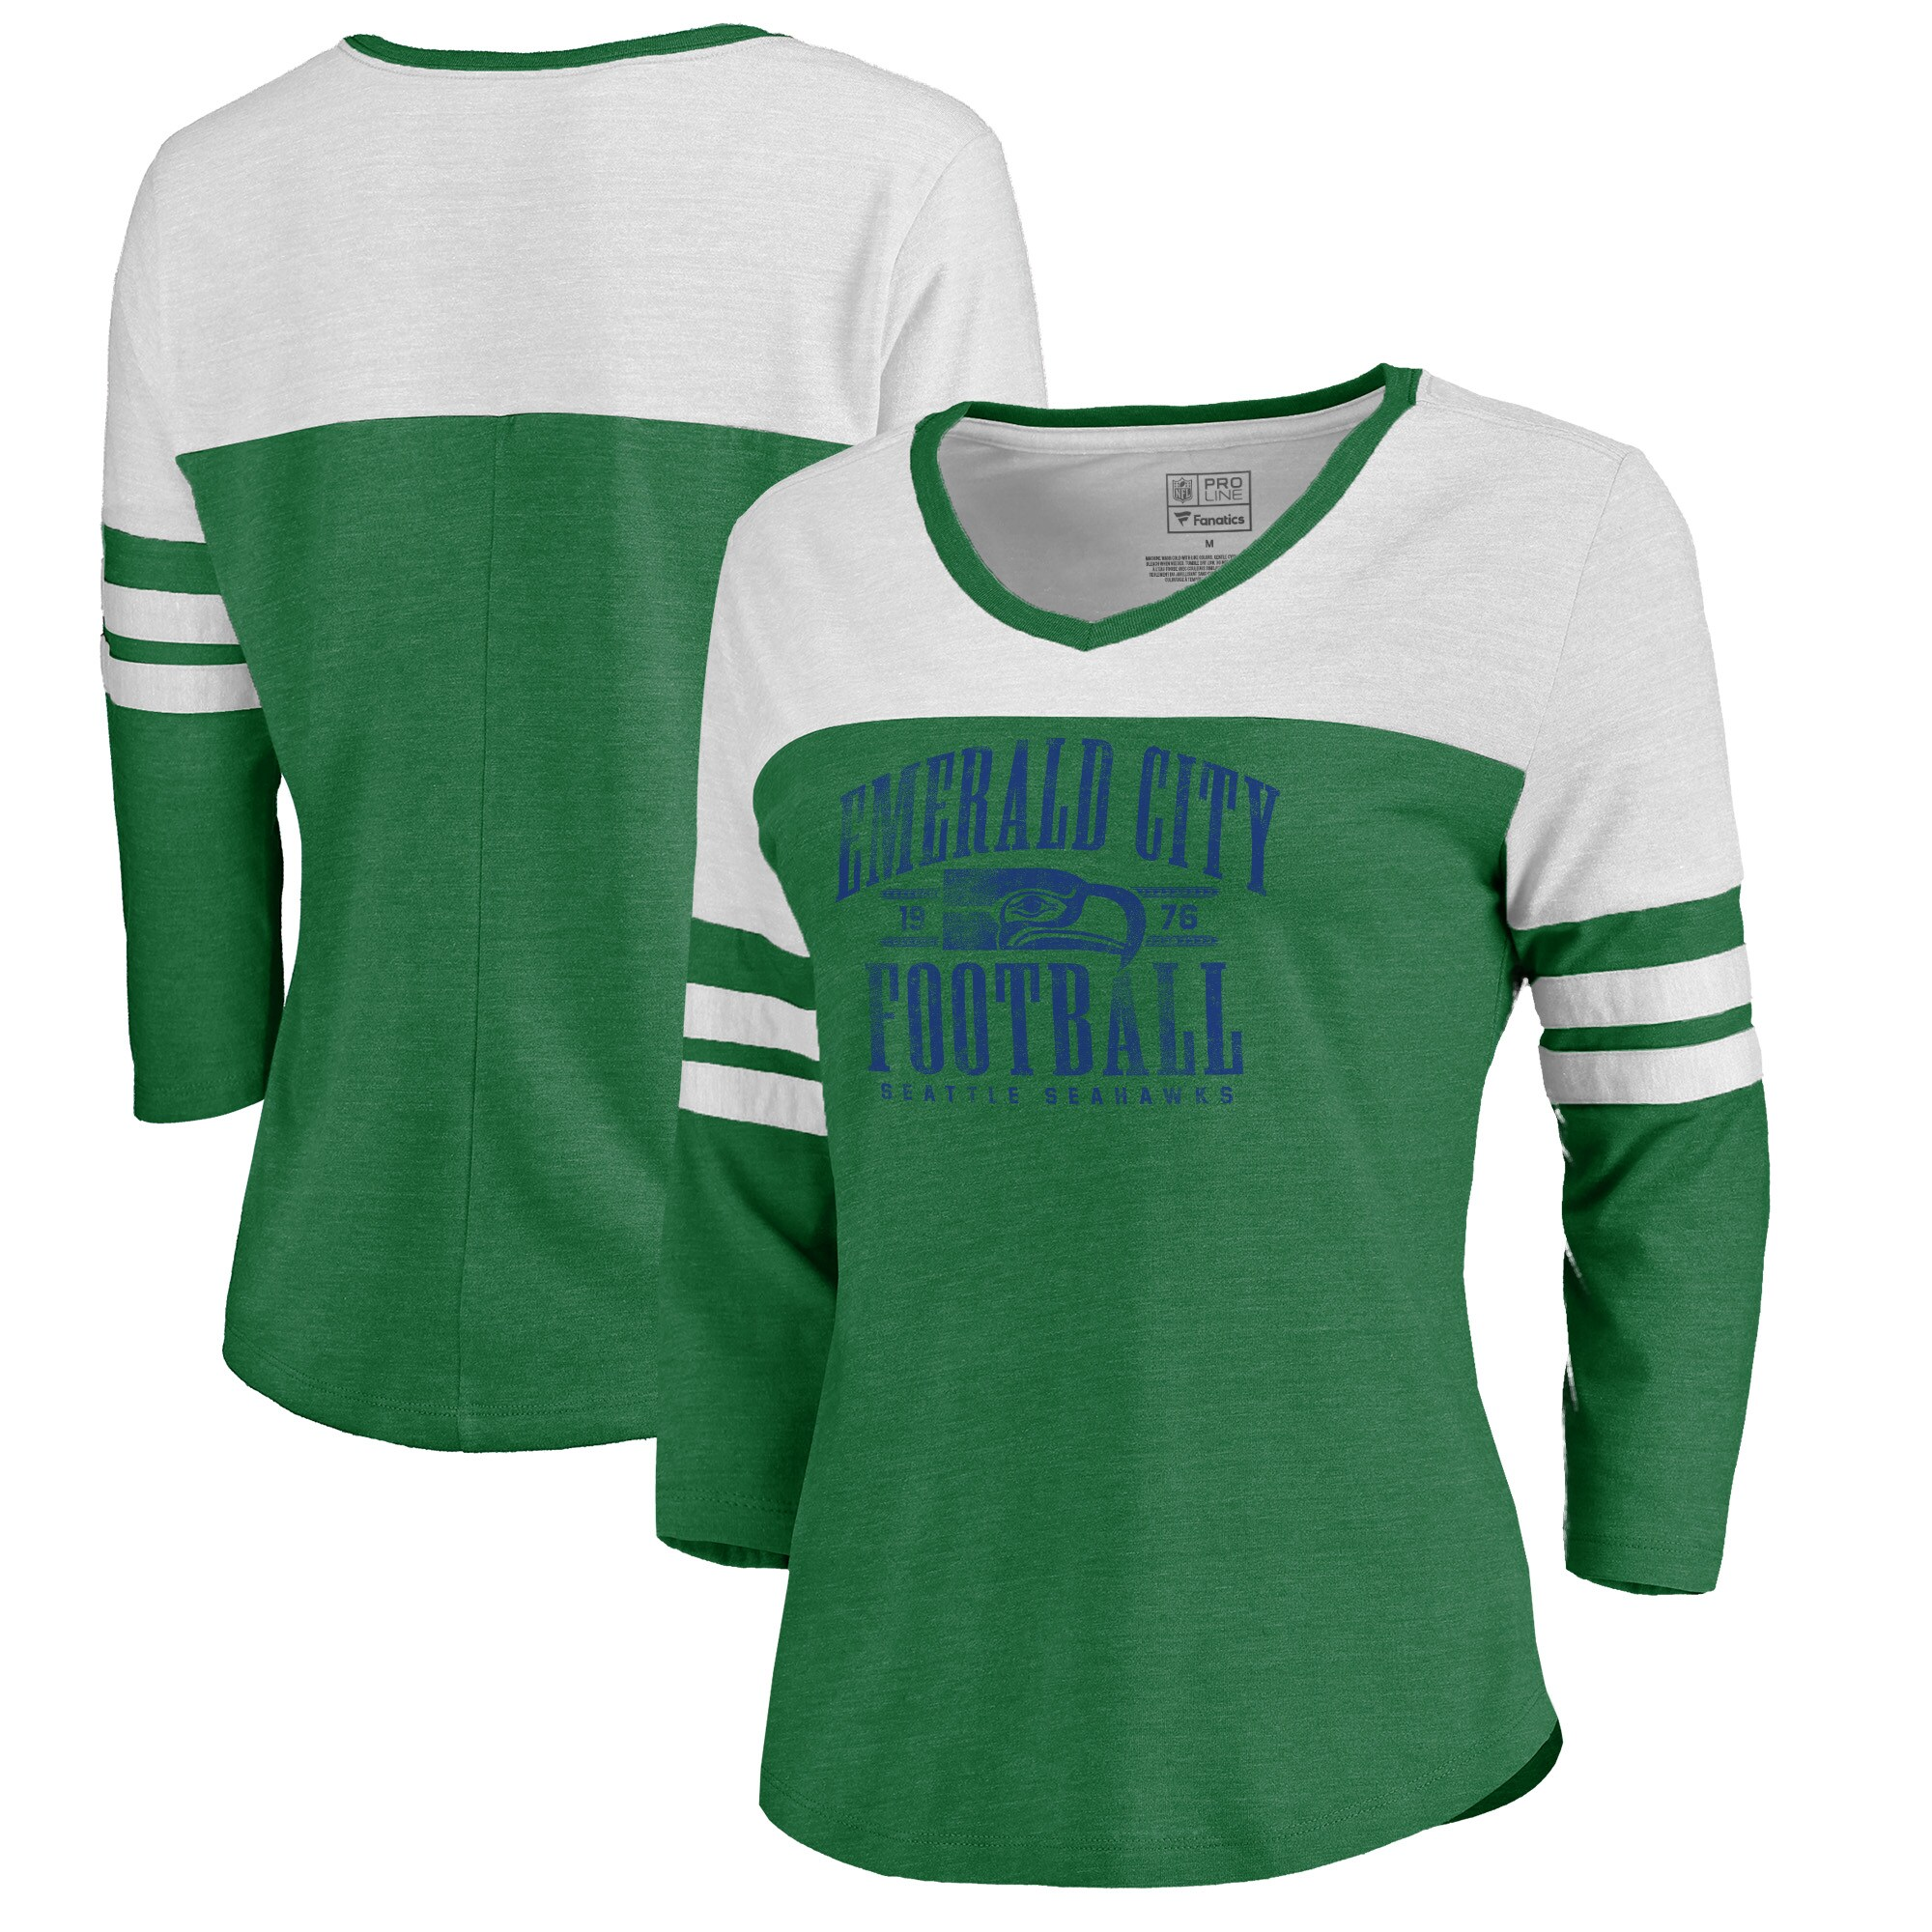 Seattle Seahawks NFL Pro Line by Fanatics Branded Women's Hometown Collection Color Block 3/4 Sleeve Tri-Blend T-Shirt - Kelly Green